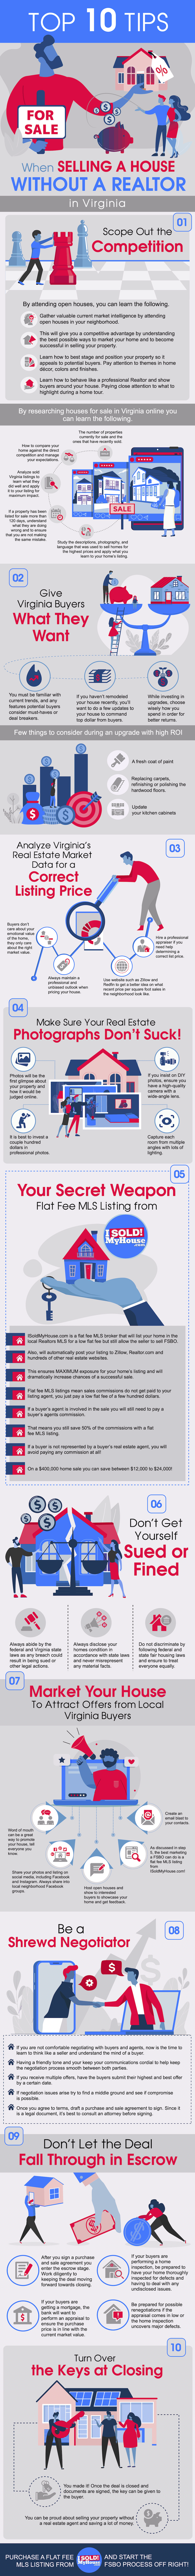 infographic of the 10 steps to sell a house in virginia without an agent